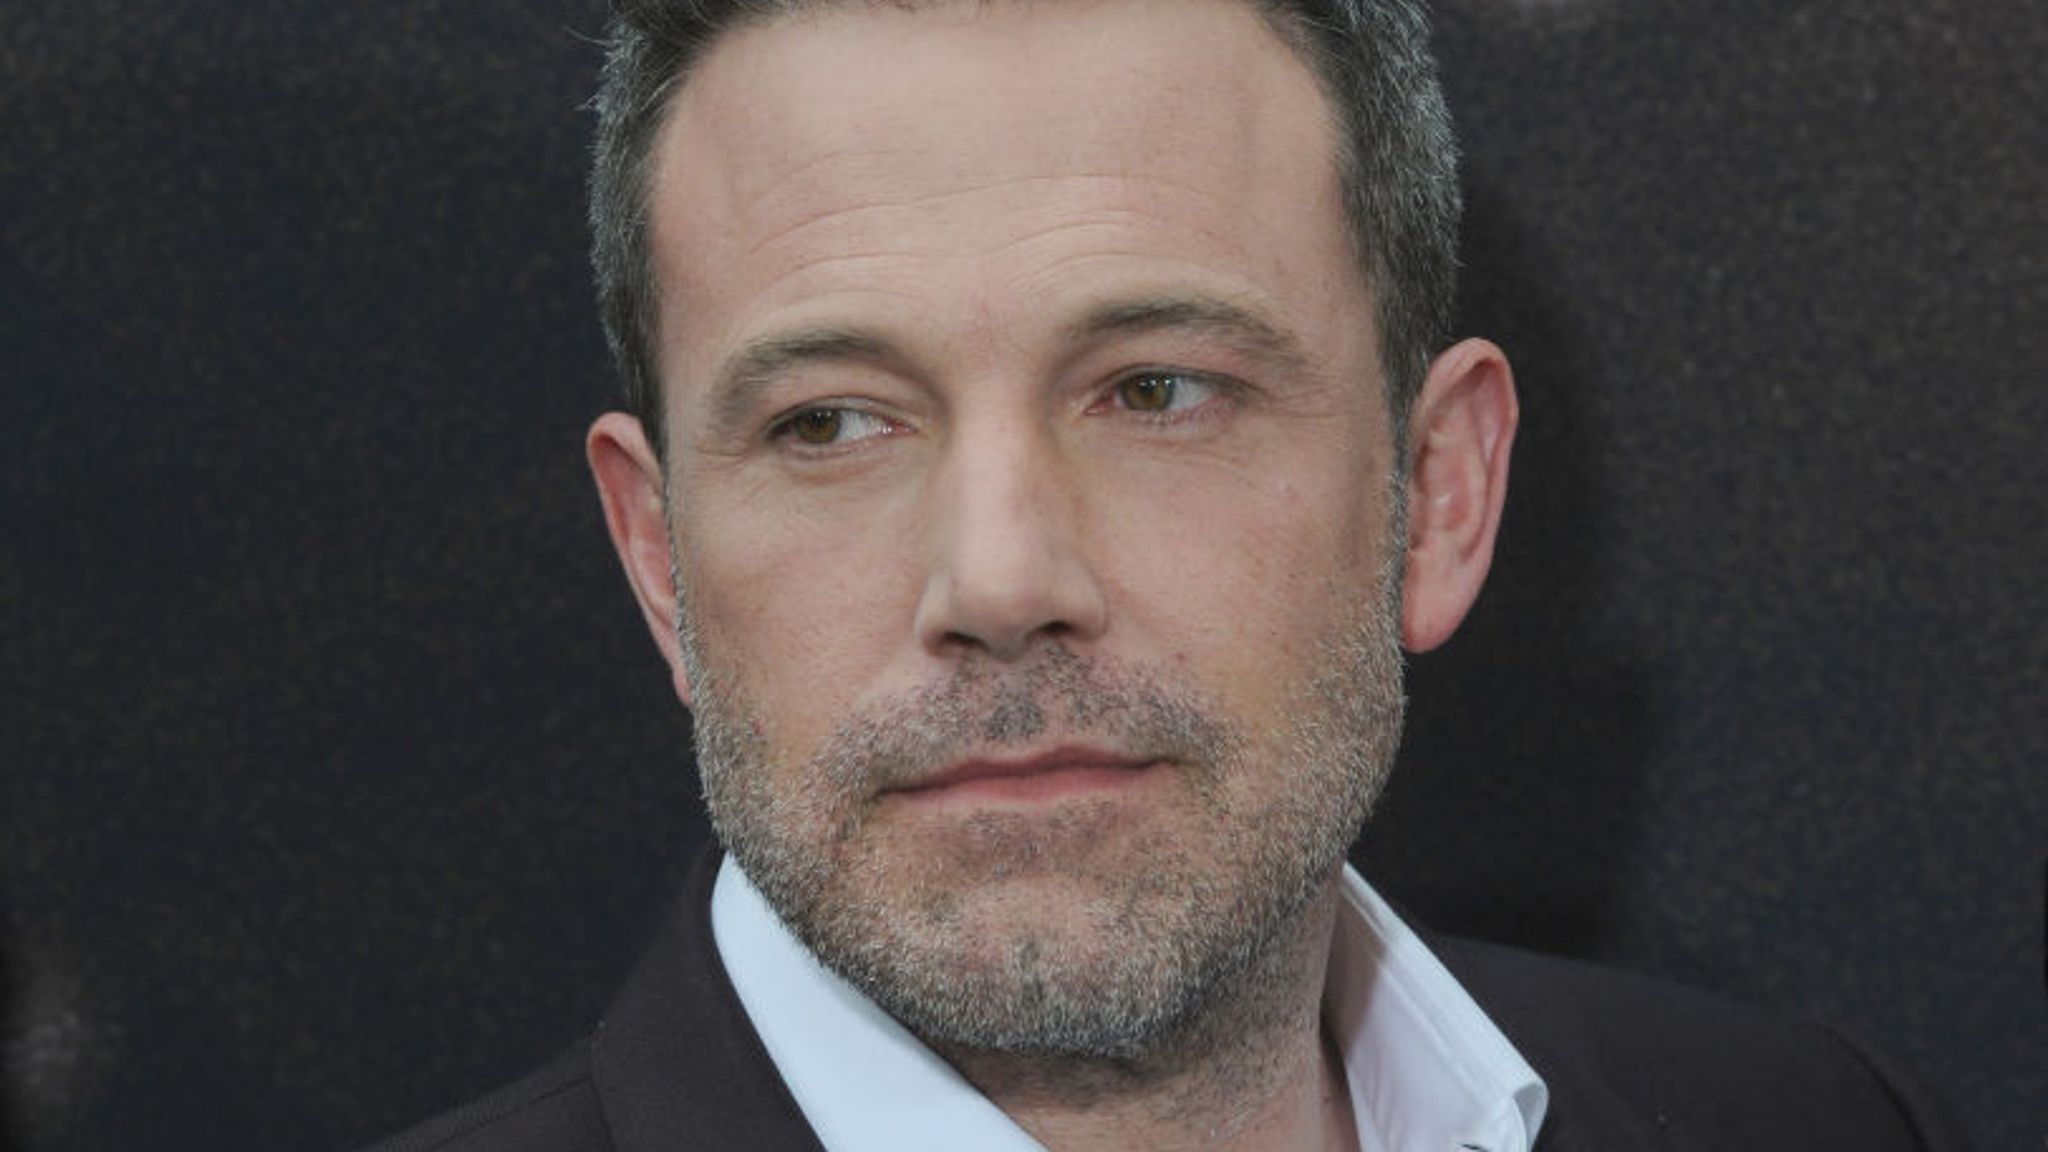 Ben Affleck has appeared on both the big and small screen this year